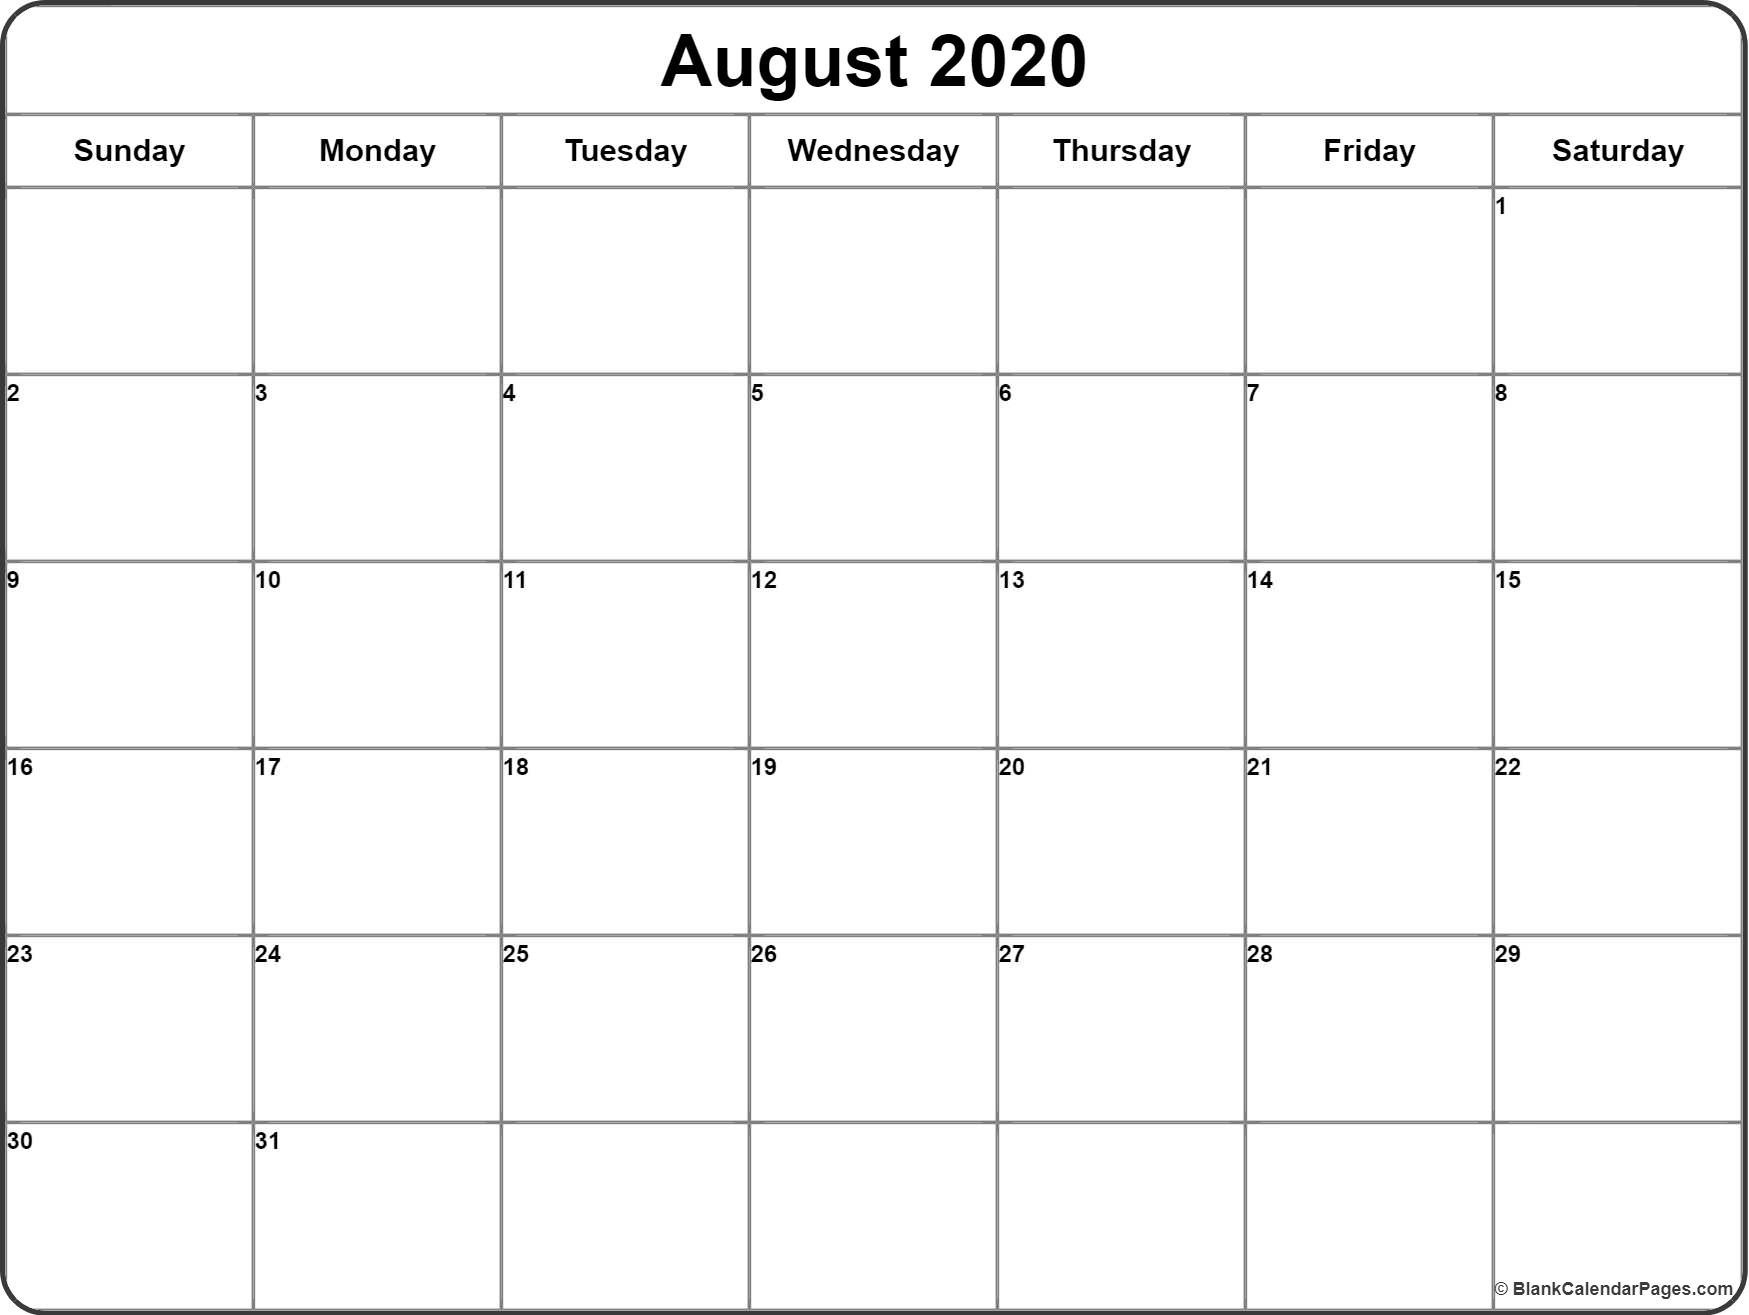 Blank Schedule Calendar 2020 Lines August | Gallery Of  August 2020 Calendar With Lines